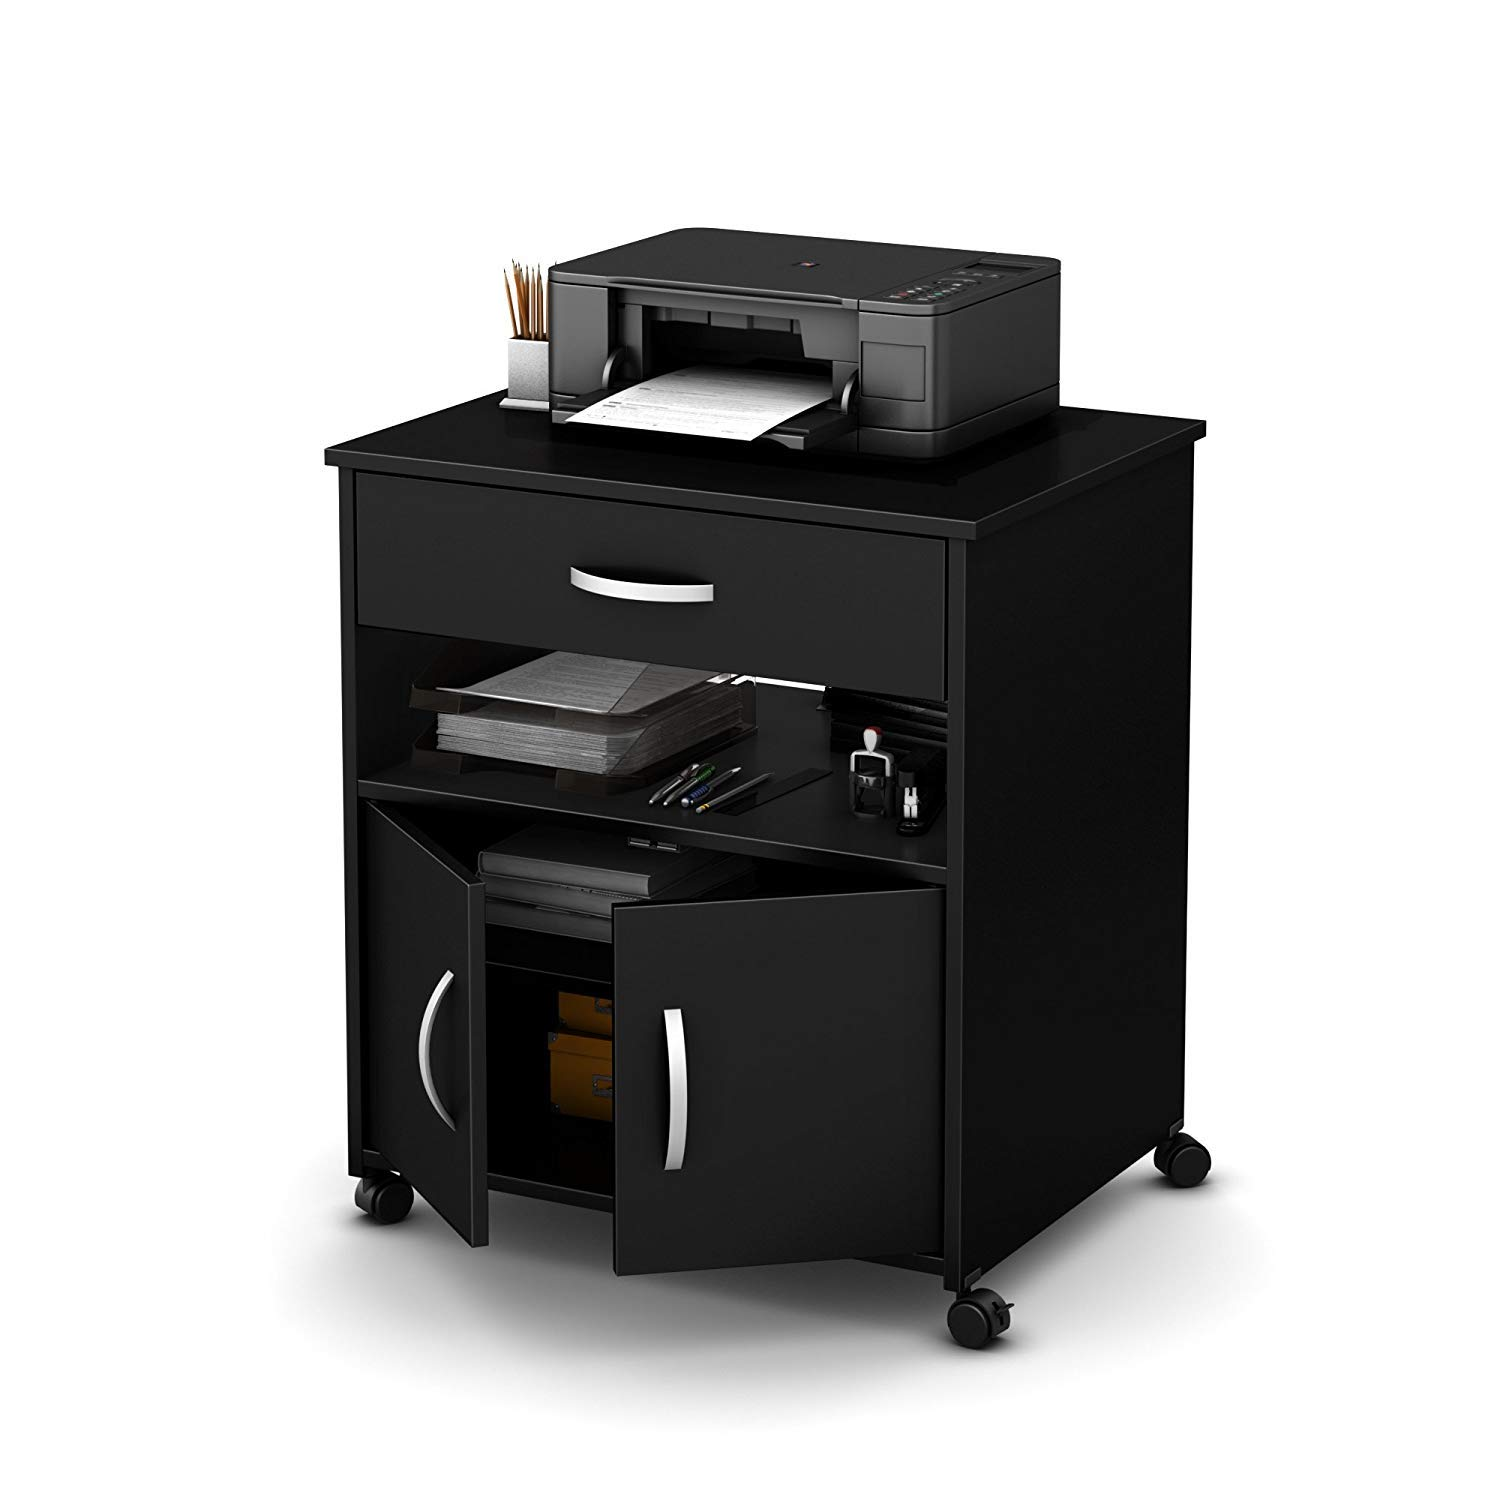 Mobile Wood Printer Stand, Printer Organizer with Storage with 2 Drawers and 1 Open Shelf, Rolling Printer Cart with Swivel Wheels for Your Home and Office,Black